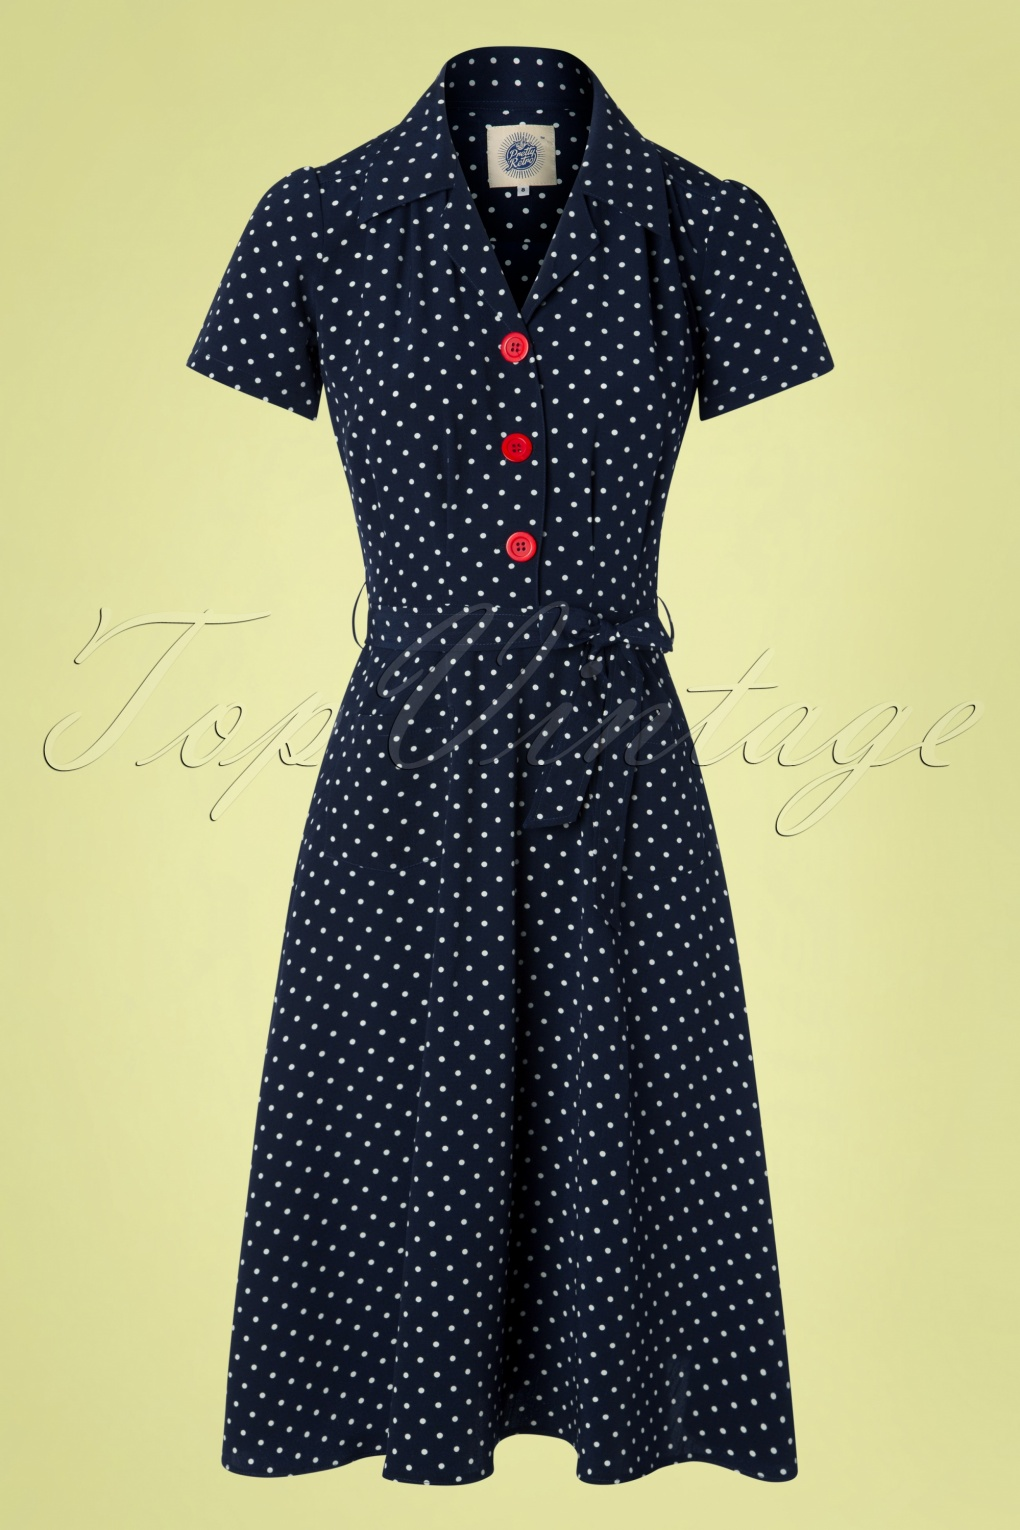 c46a6b6283b 50 Vintage Inspired Clothing Stores 40s Pretty Polkadot Shirt Dress in Navy   64.81 AT vintagedancer